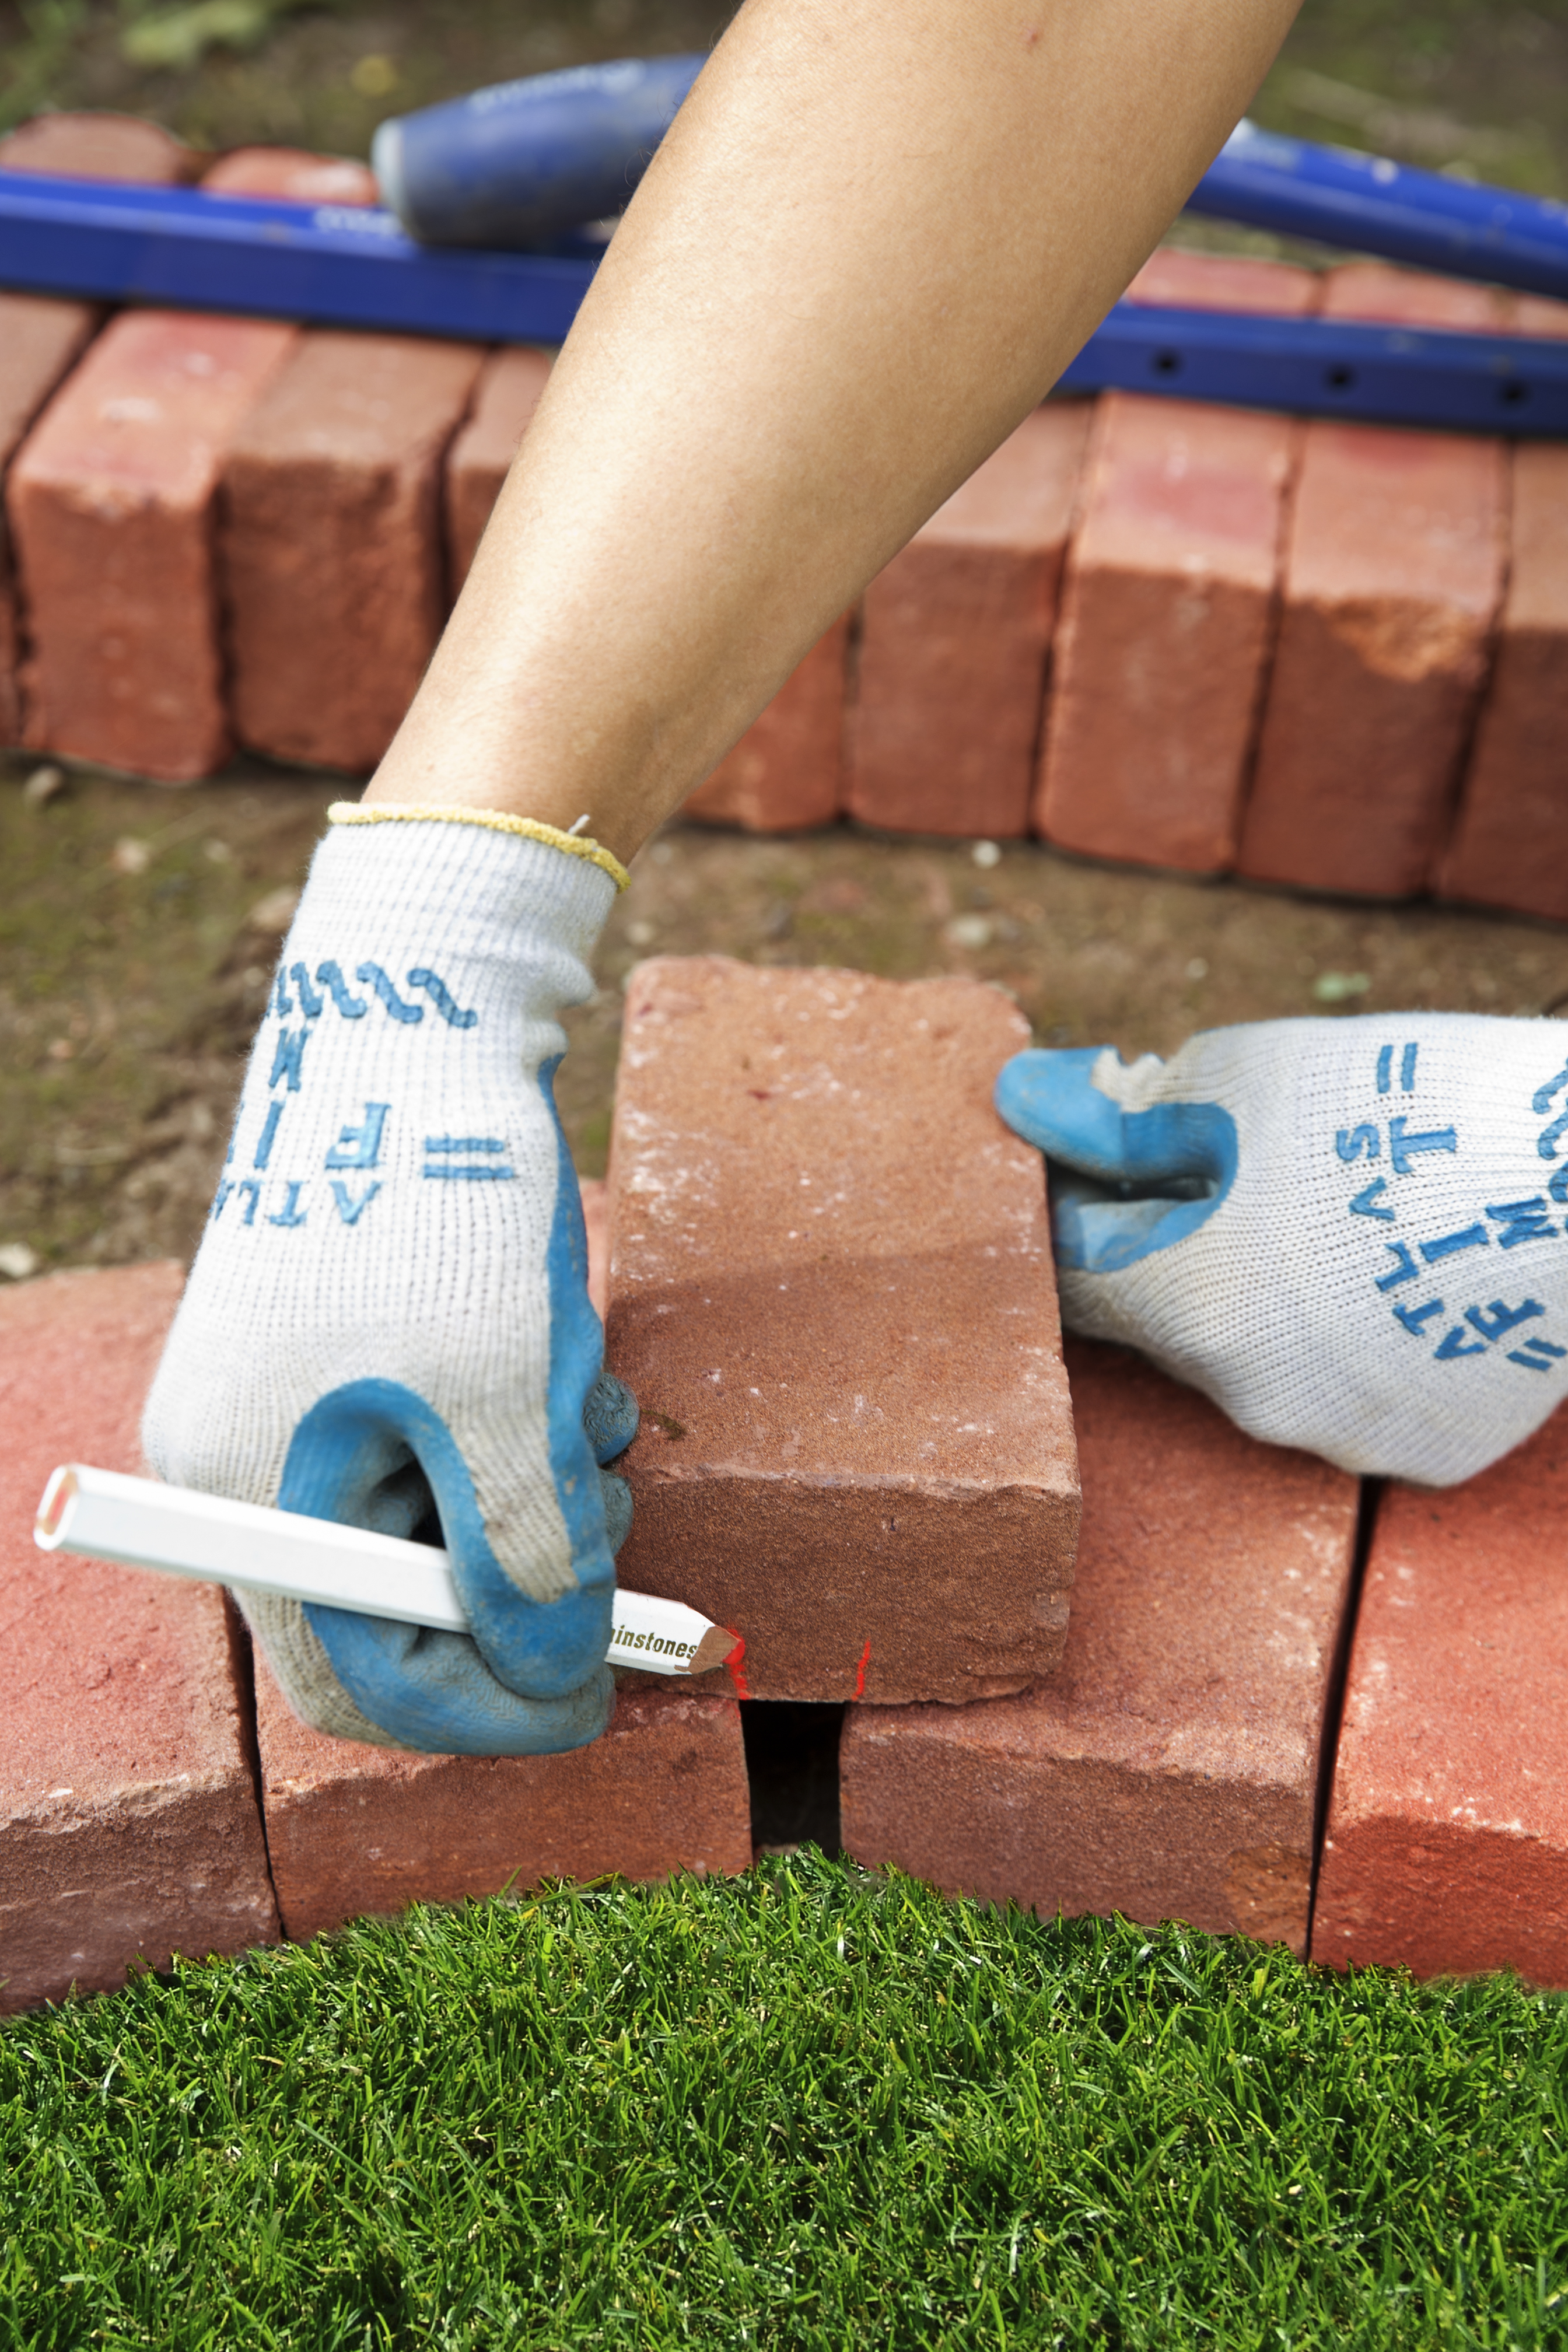 Man Hoses Off Brick Edging With Water